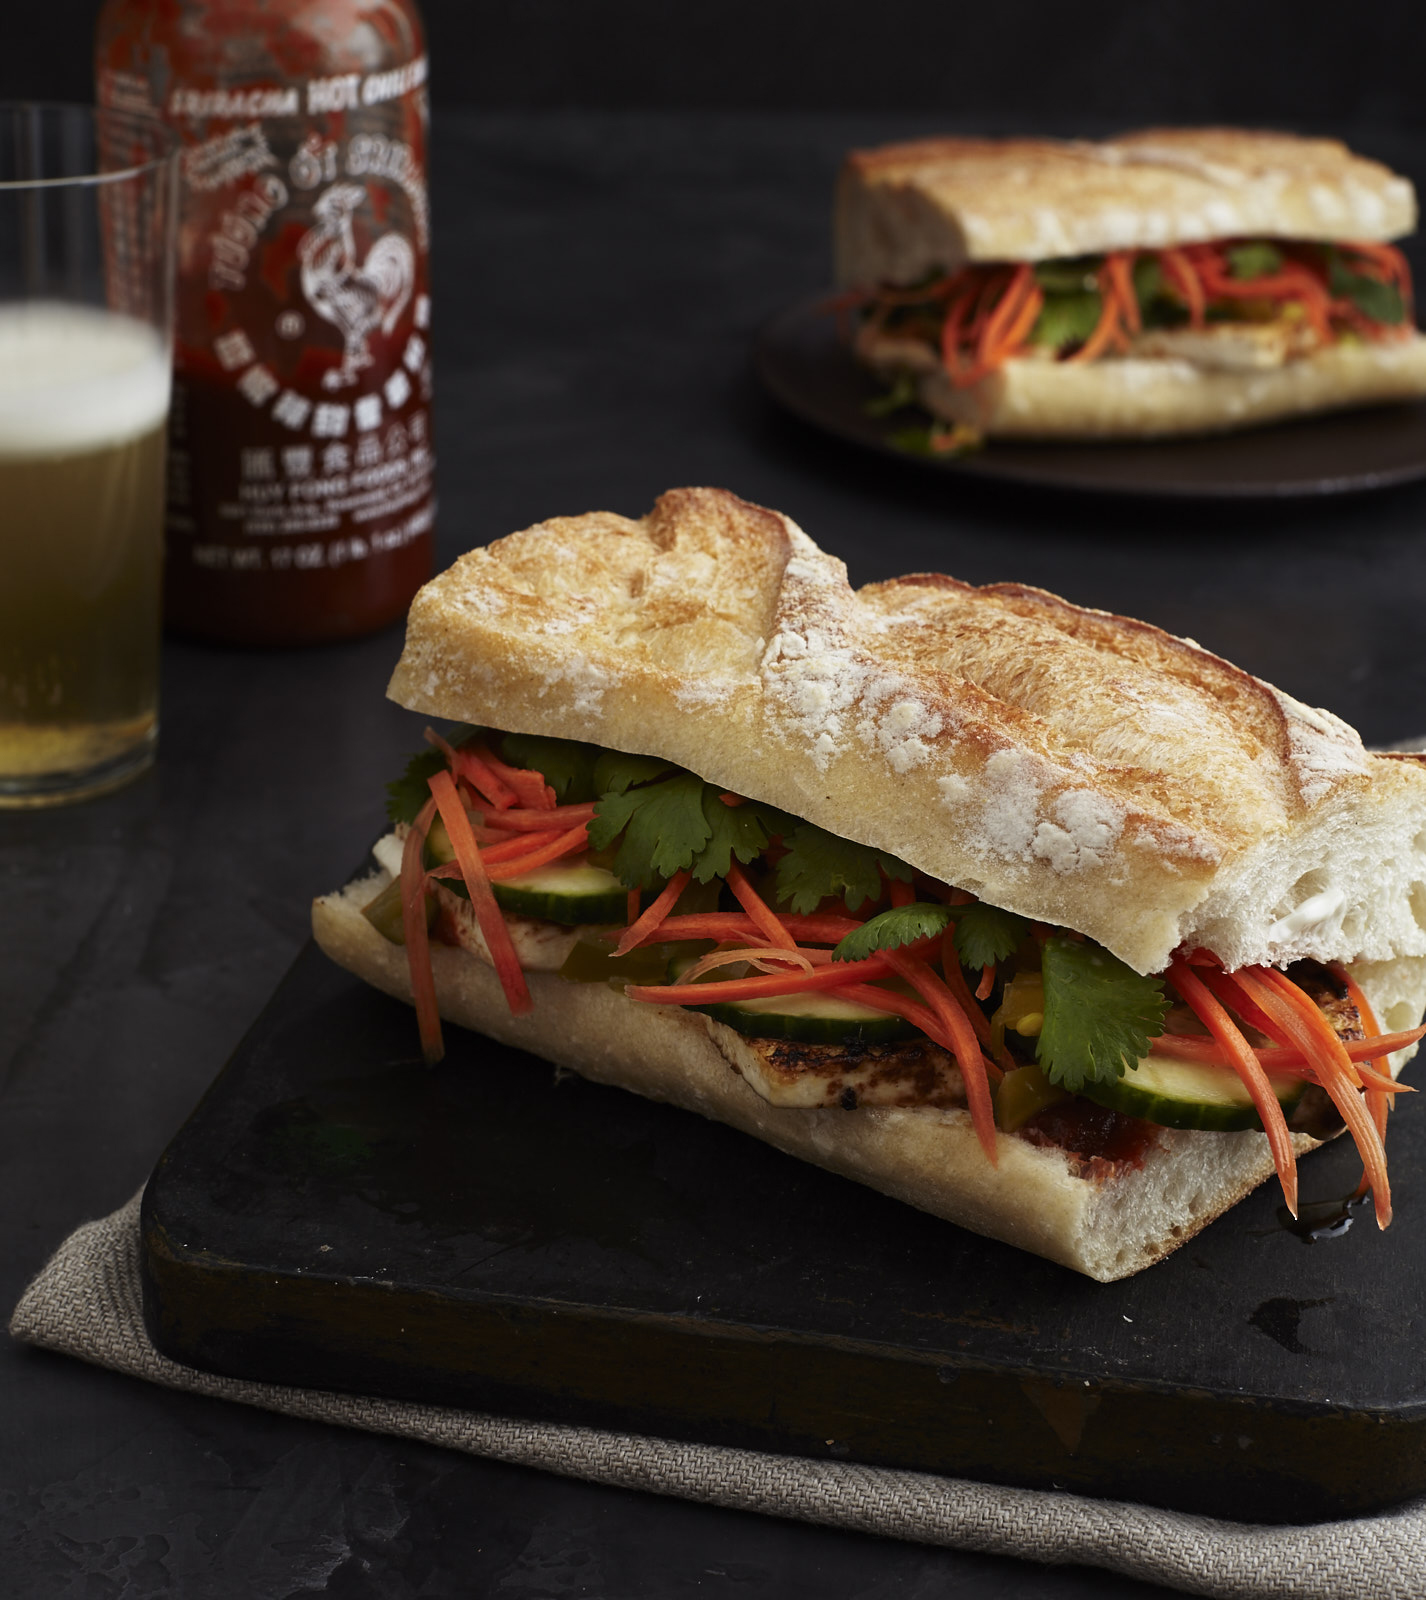 Vegan Banh Mi sandwich from Veganize It! by Robin Robertson